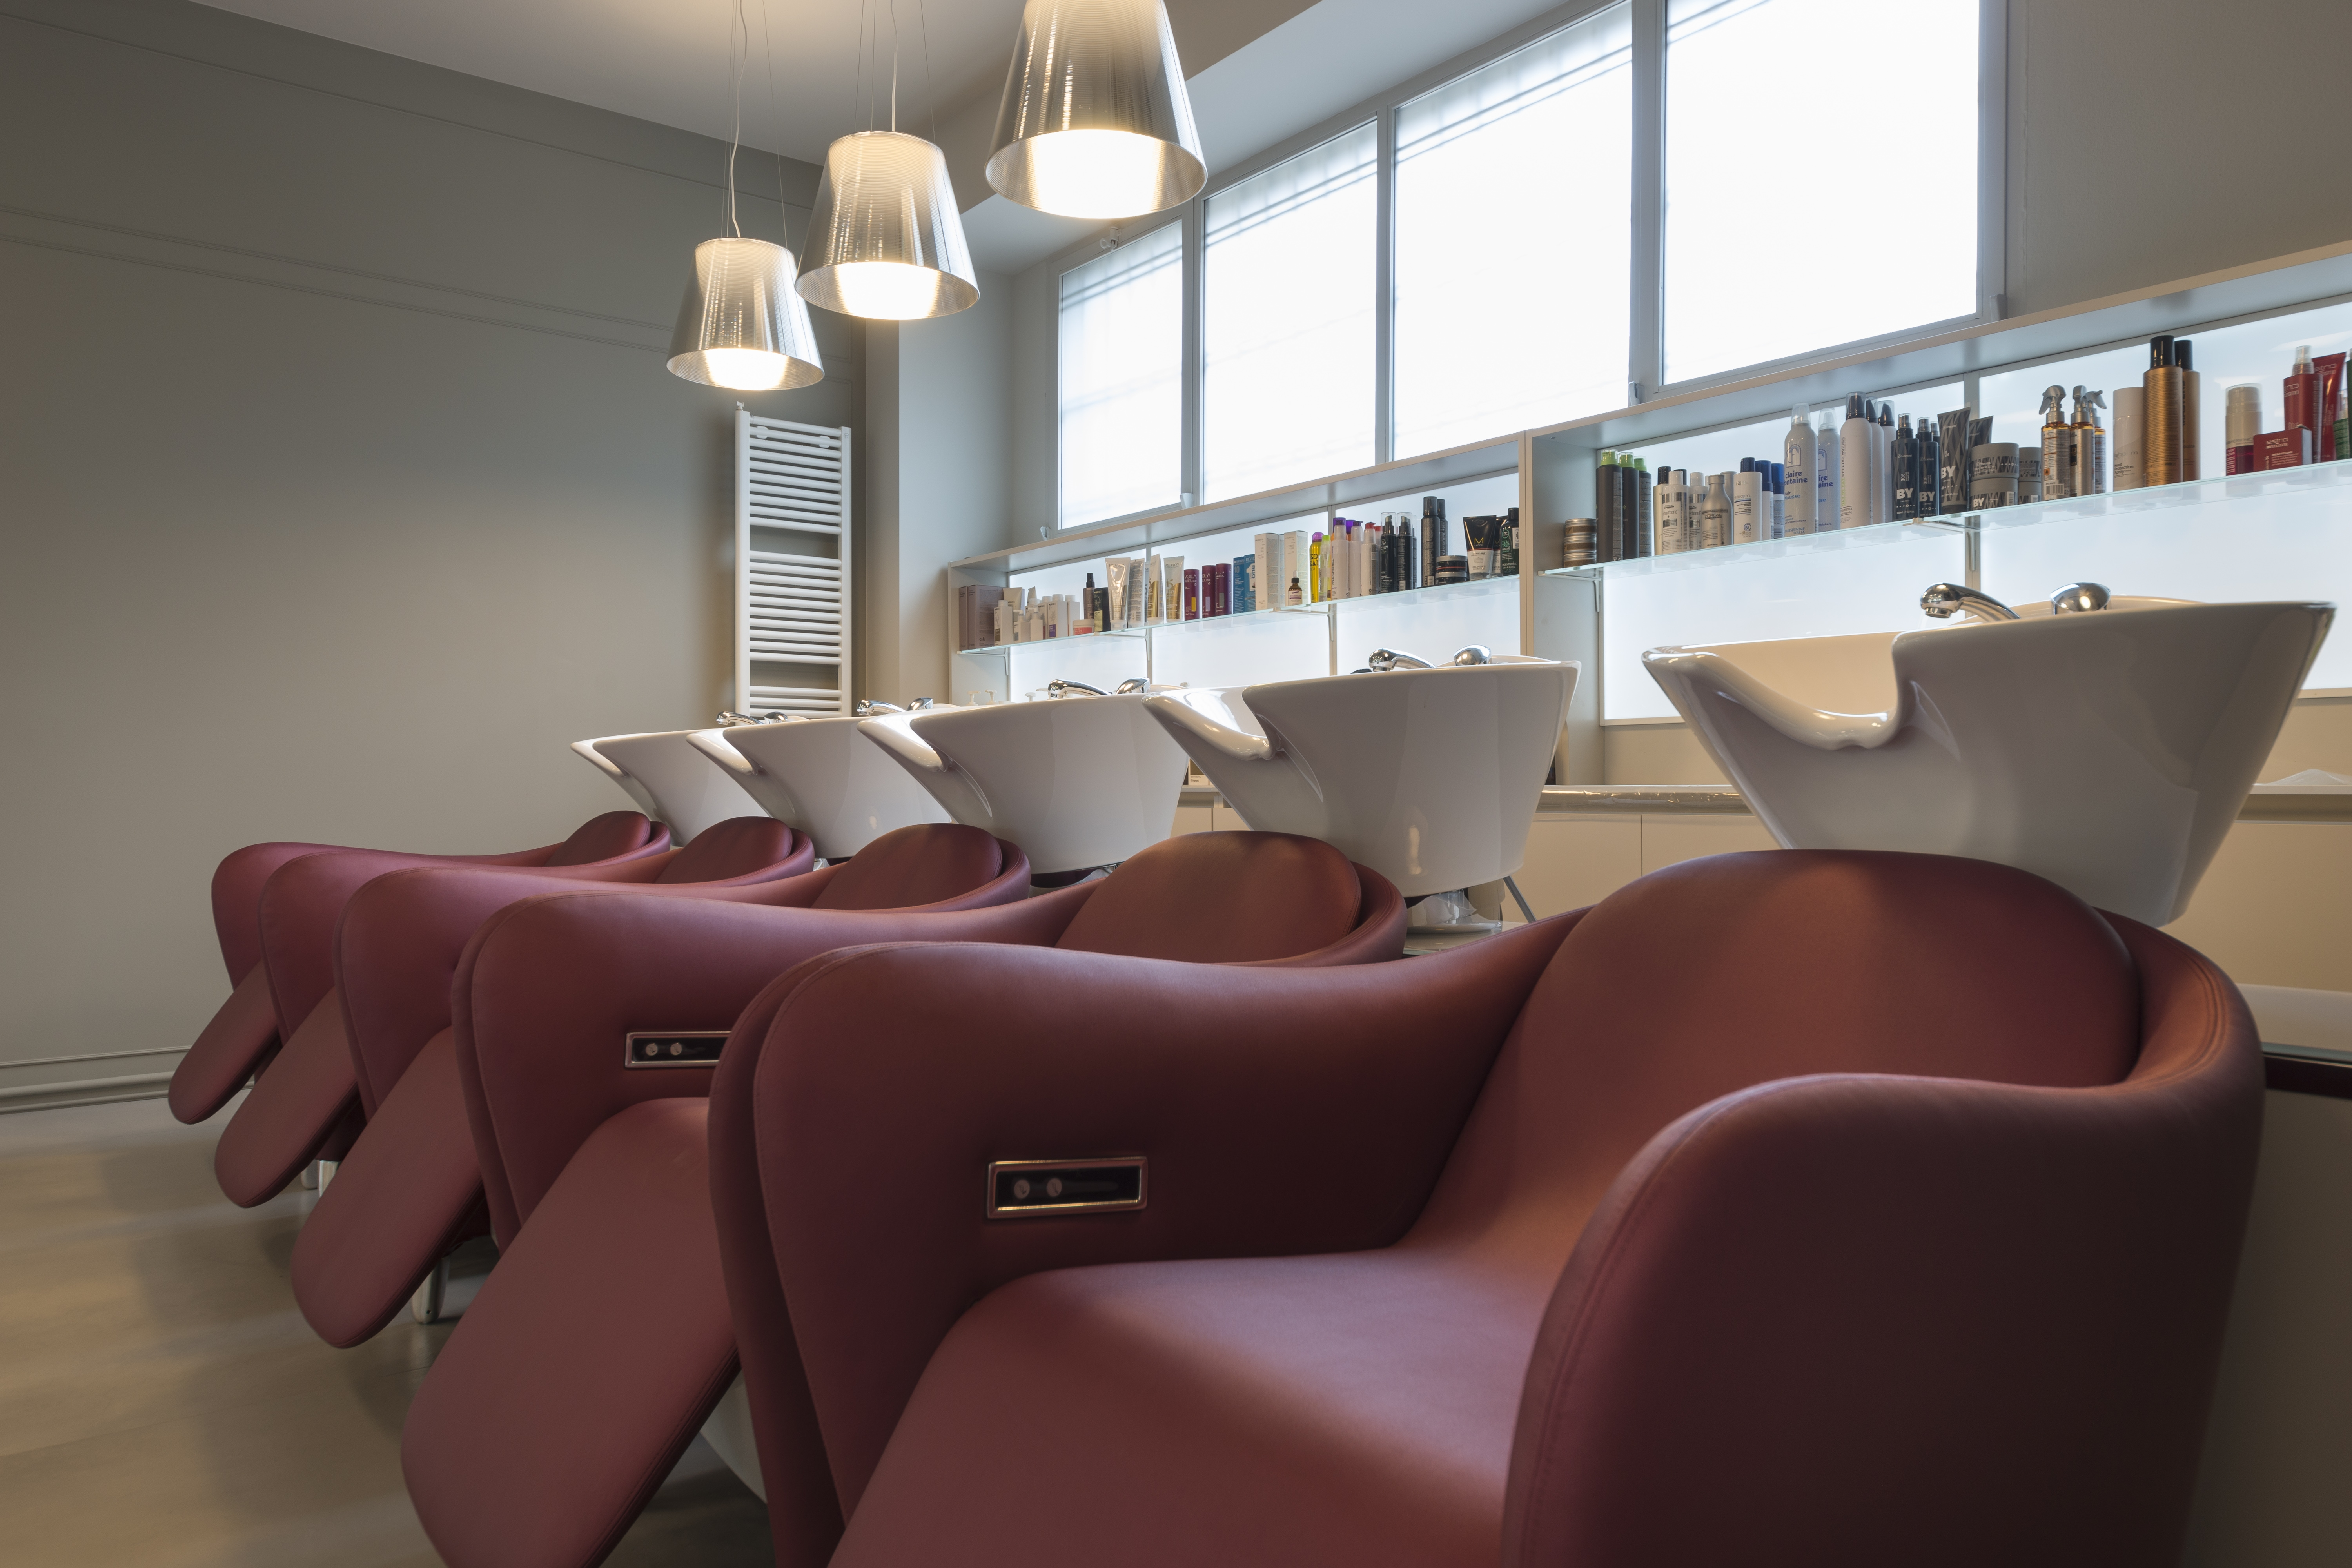 Two Salon Furniture Companies Join Forces